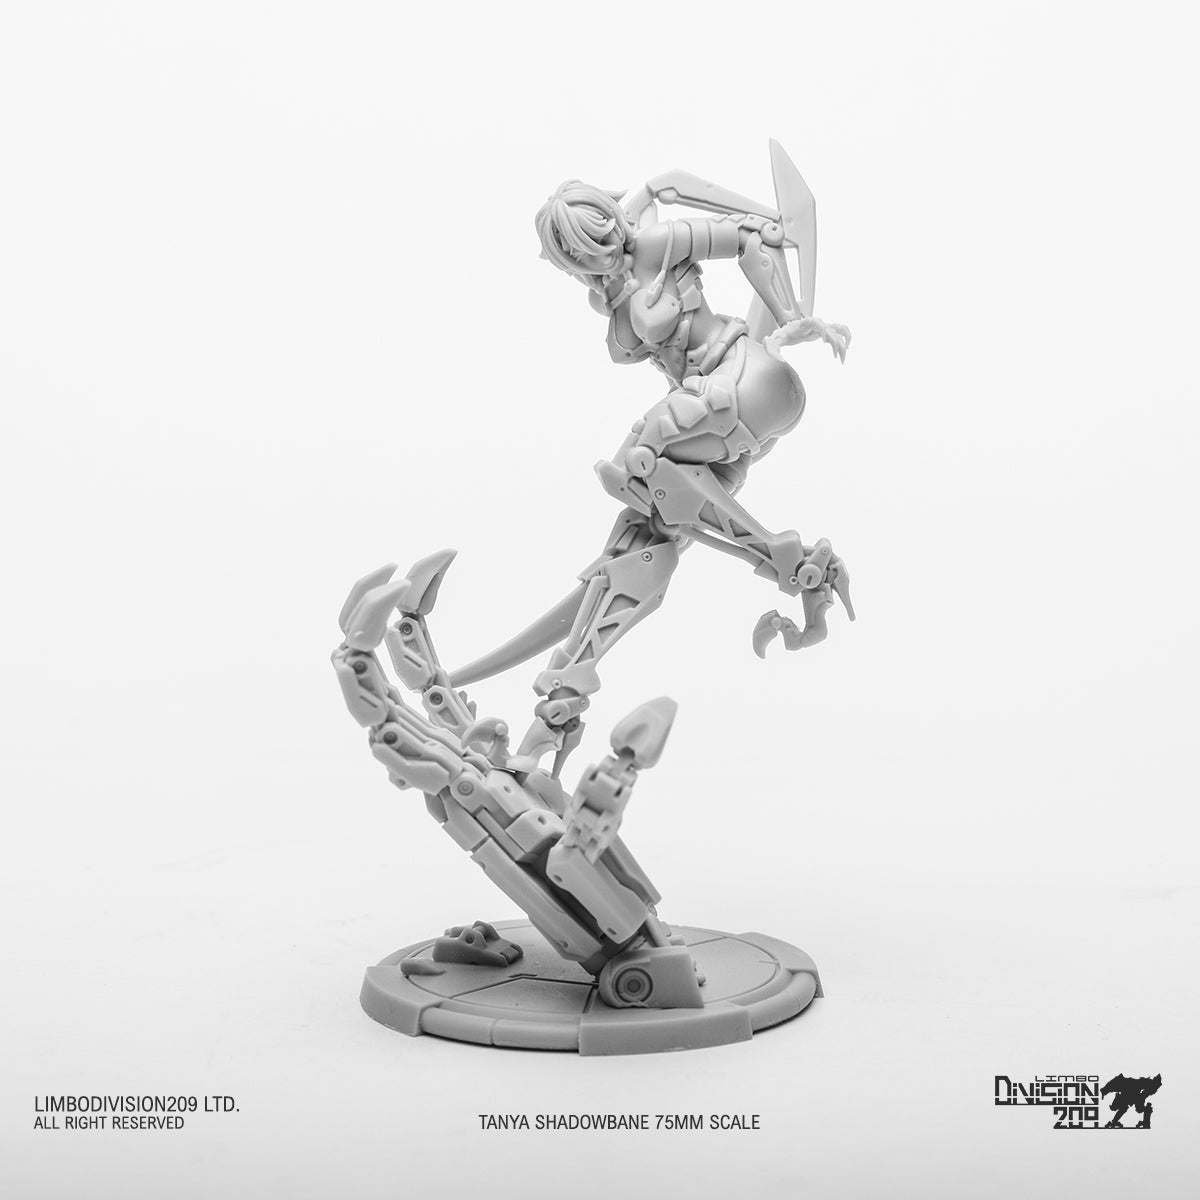 Tanya Shadowbane 75mm